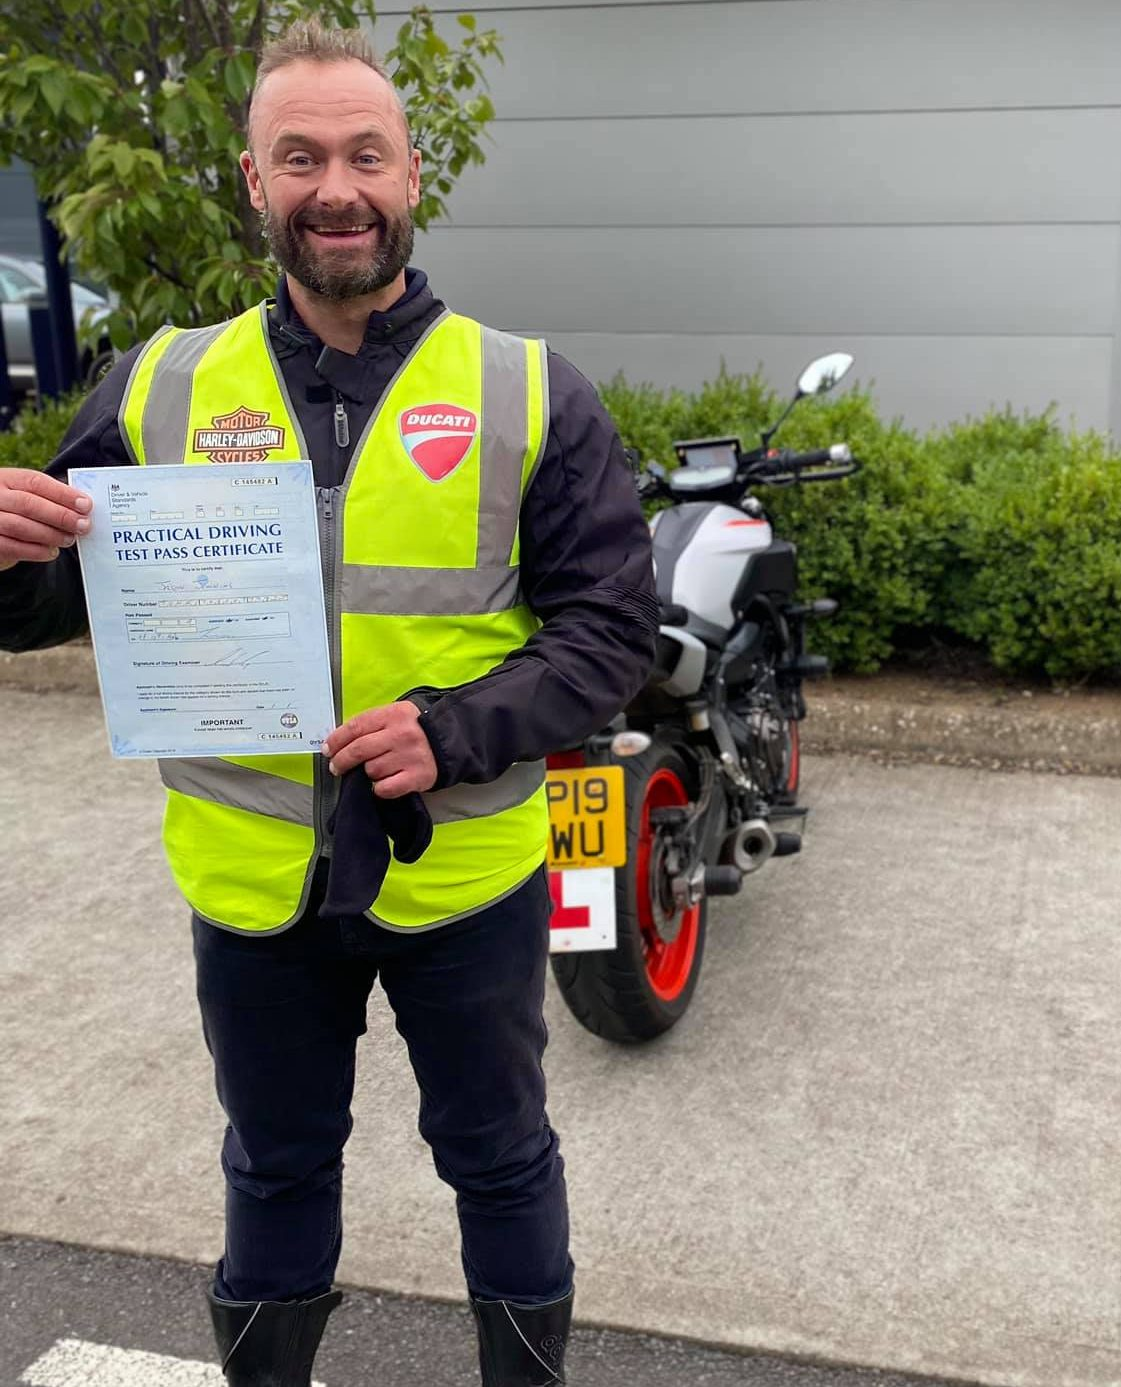 Jason From Wellington With First Time DAS Mod2 Pass